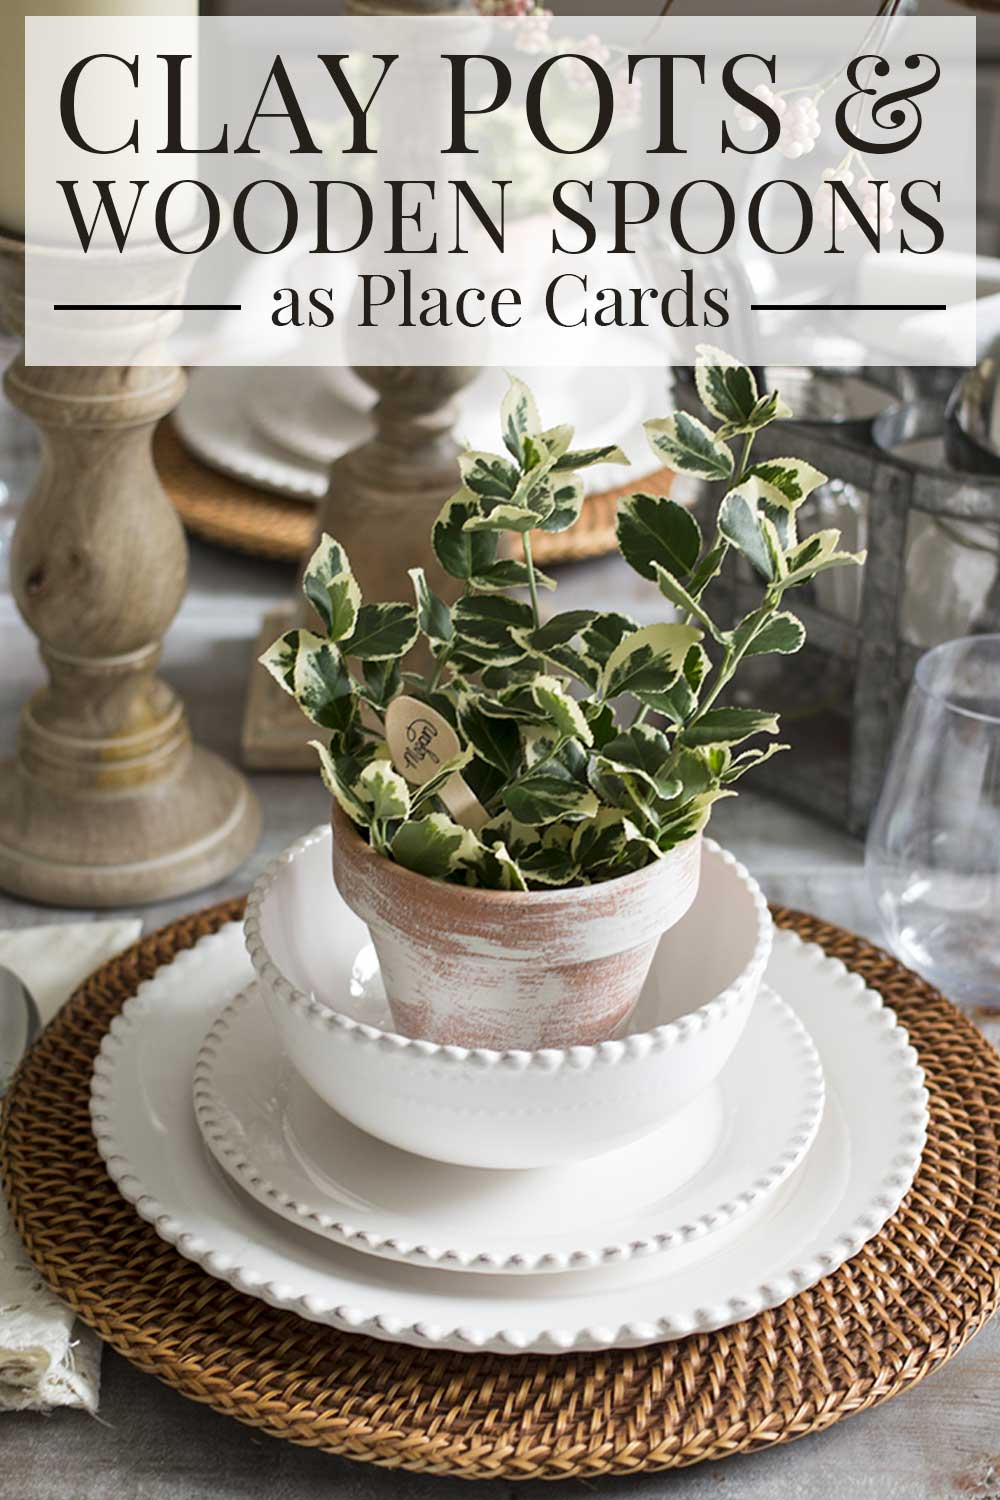 Spring table setting, clay pot and wooden spoon as place card with greens